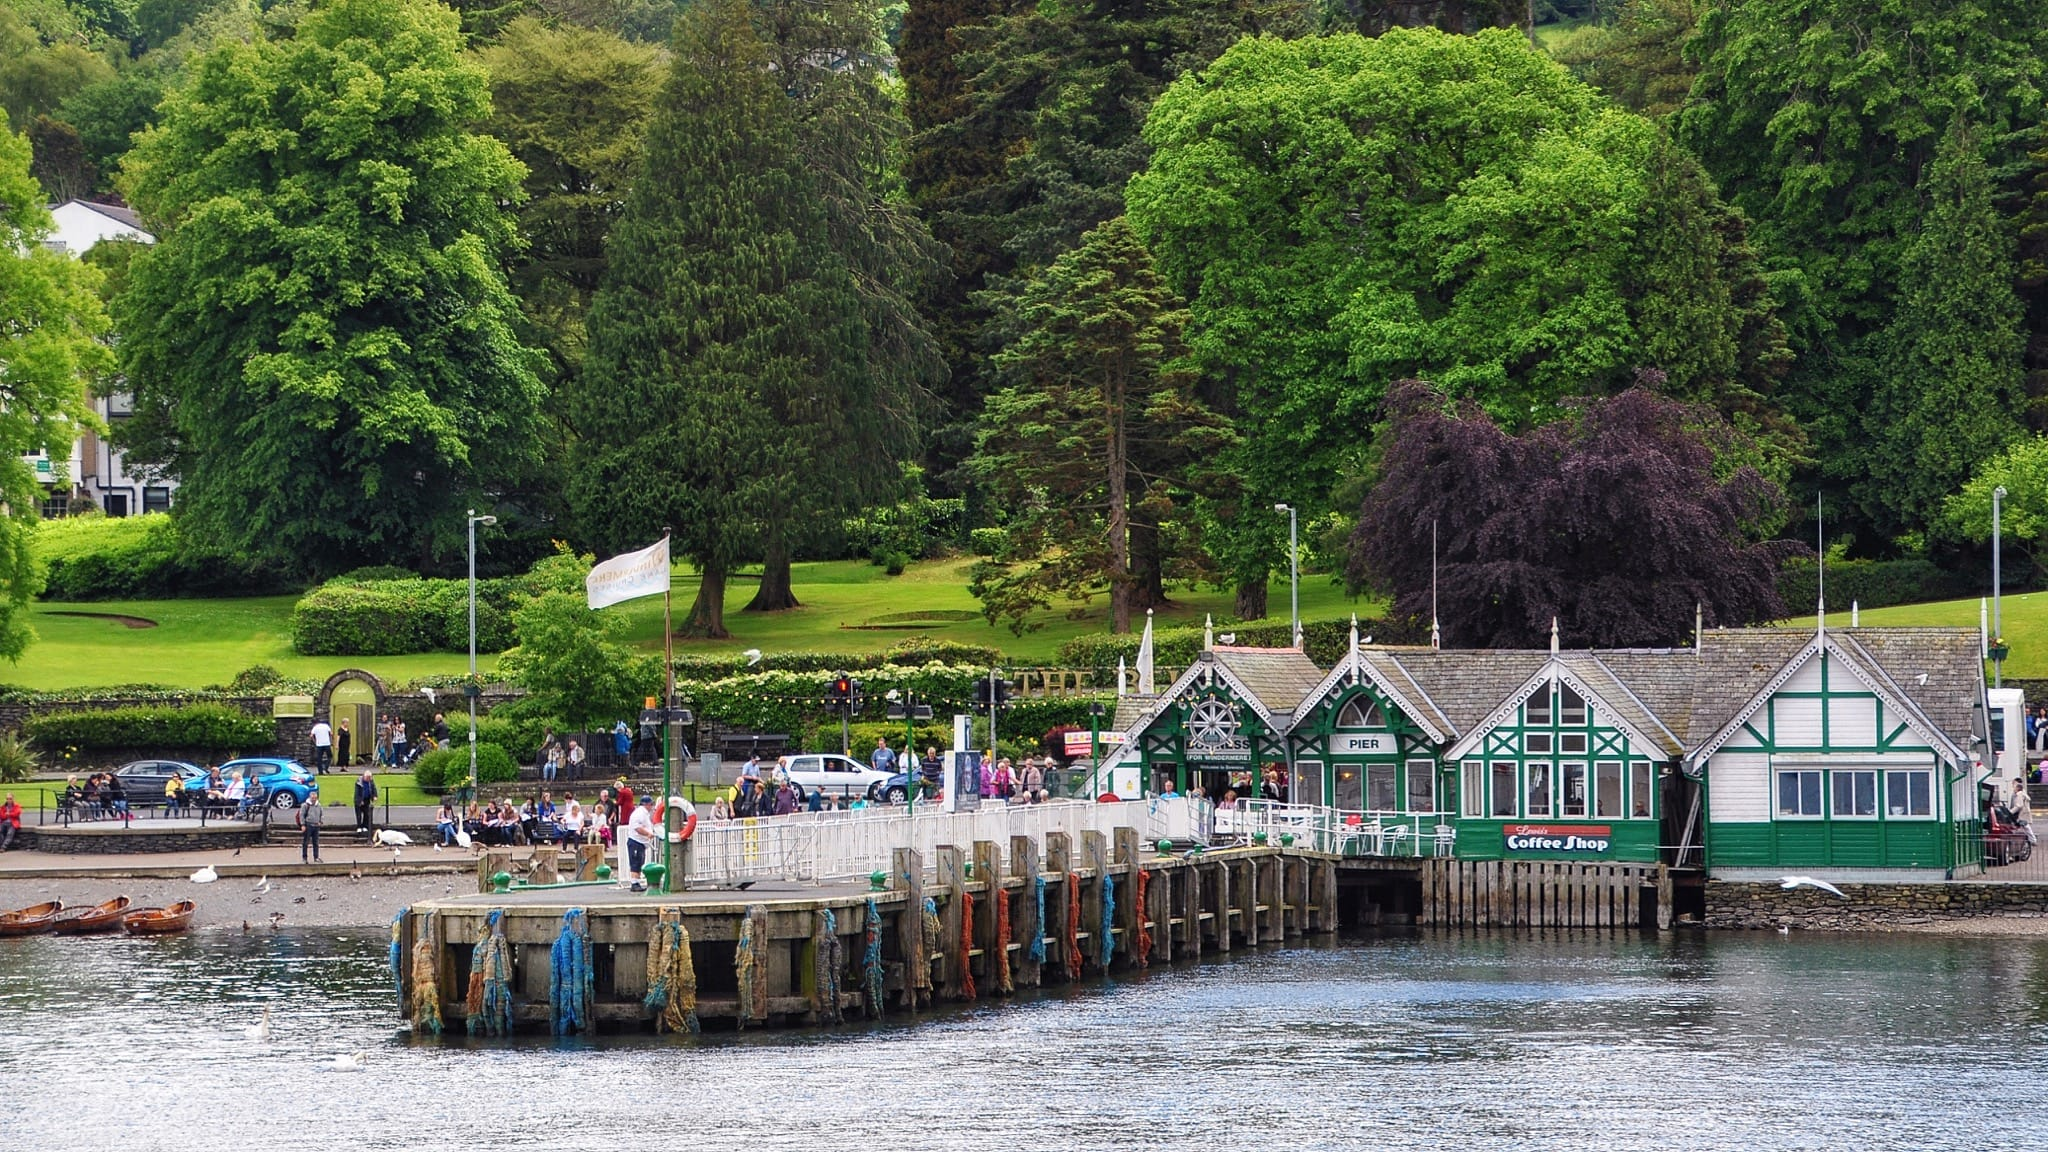 A view of Bowness Pier from the lake of Windermere, with green leafy trees behind it. Photo by Nilfanion, licensed CC-BY-SA-4.0.